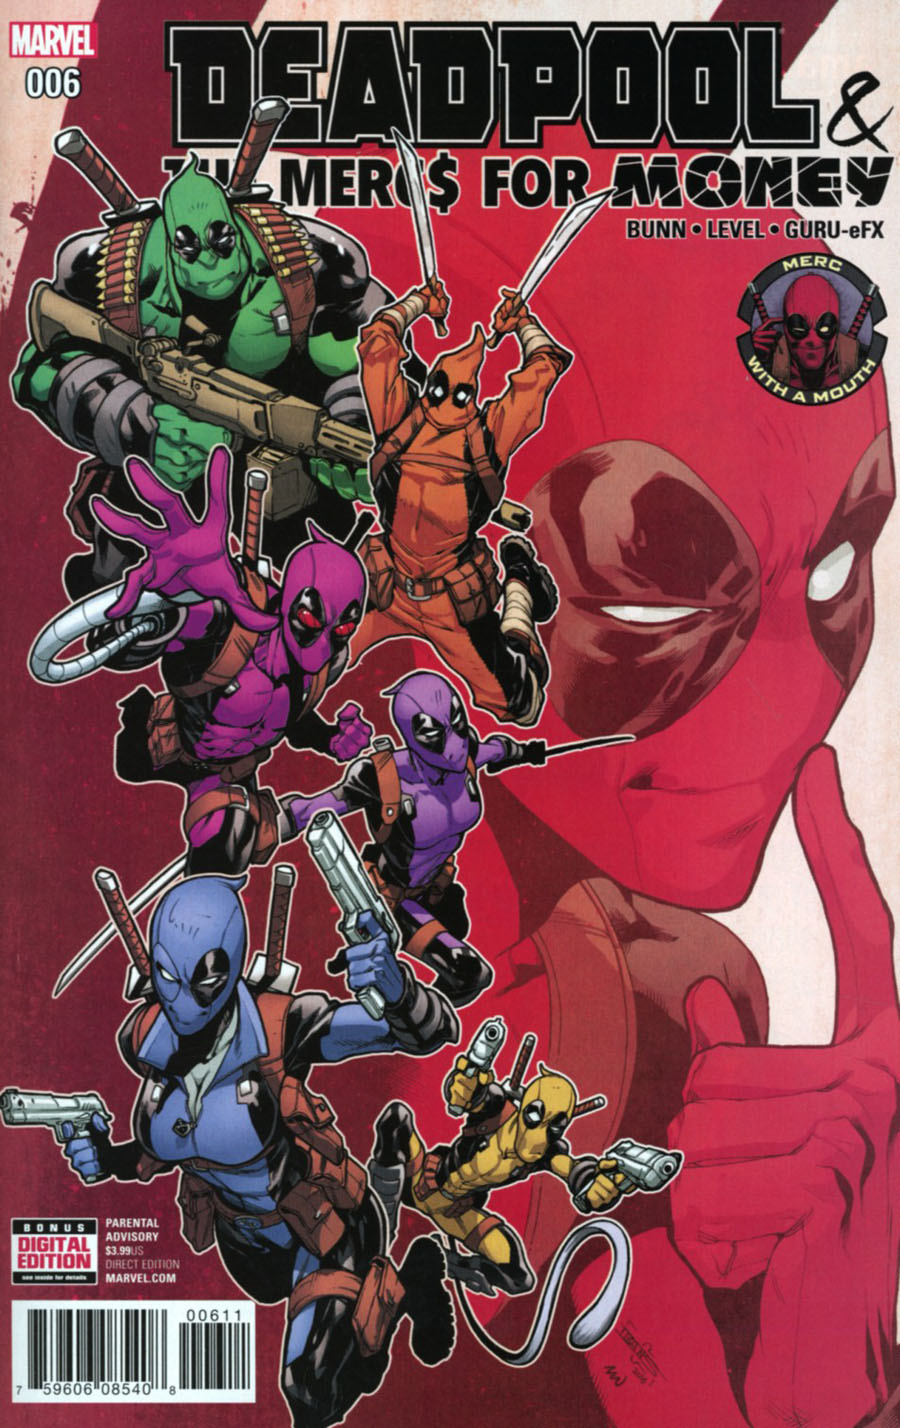 Deadpool And The Mercs For Money Vol 2 #6 Cover A Regular Iban Coello Cover